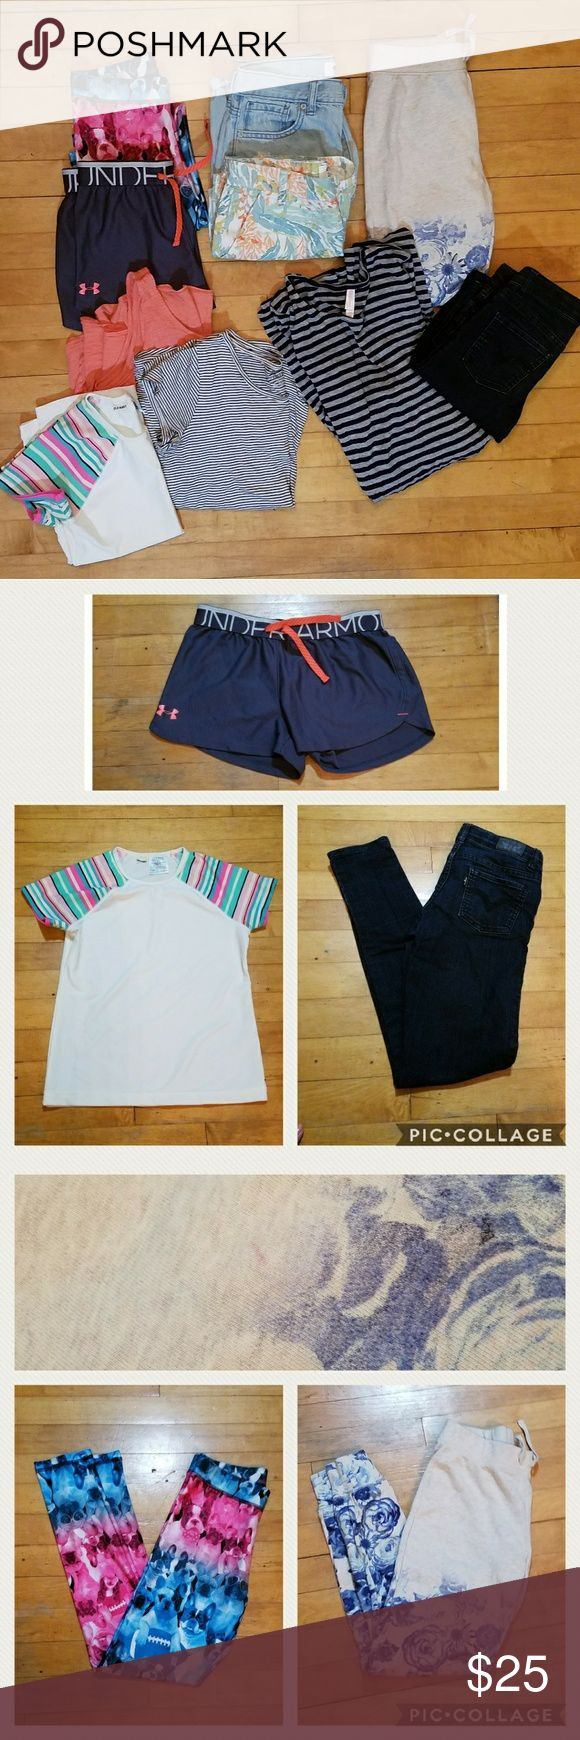 Girls Size 10-12-14 10 Item Bundle Lot Girls Size 10-12-14 Bundle Old Navy Rash Guard Swim Top, Size 10/12. Girls Levi's Skinny Jeans, size 12. Old Navy Striped flowy tshirt, size 14. Old Navy Flowy Tank top, size 14. Under Armour shorts, size L. Justice dog leggings, size 12. Xhilaration bell sleeve dress, size 10/12. Old Navy floral shorts,  size 14. Old Navy denim boyfriend shorts, size 12. Gap Kids floral sweats, size 12. All in Excellent used condition, only flaws are 2 tiny spots on…